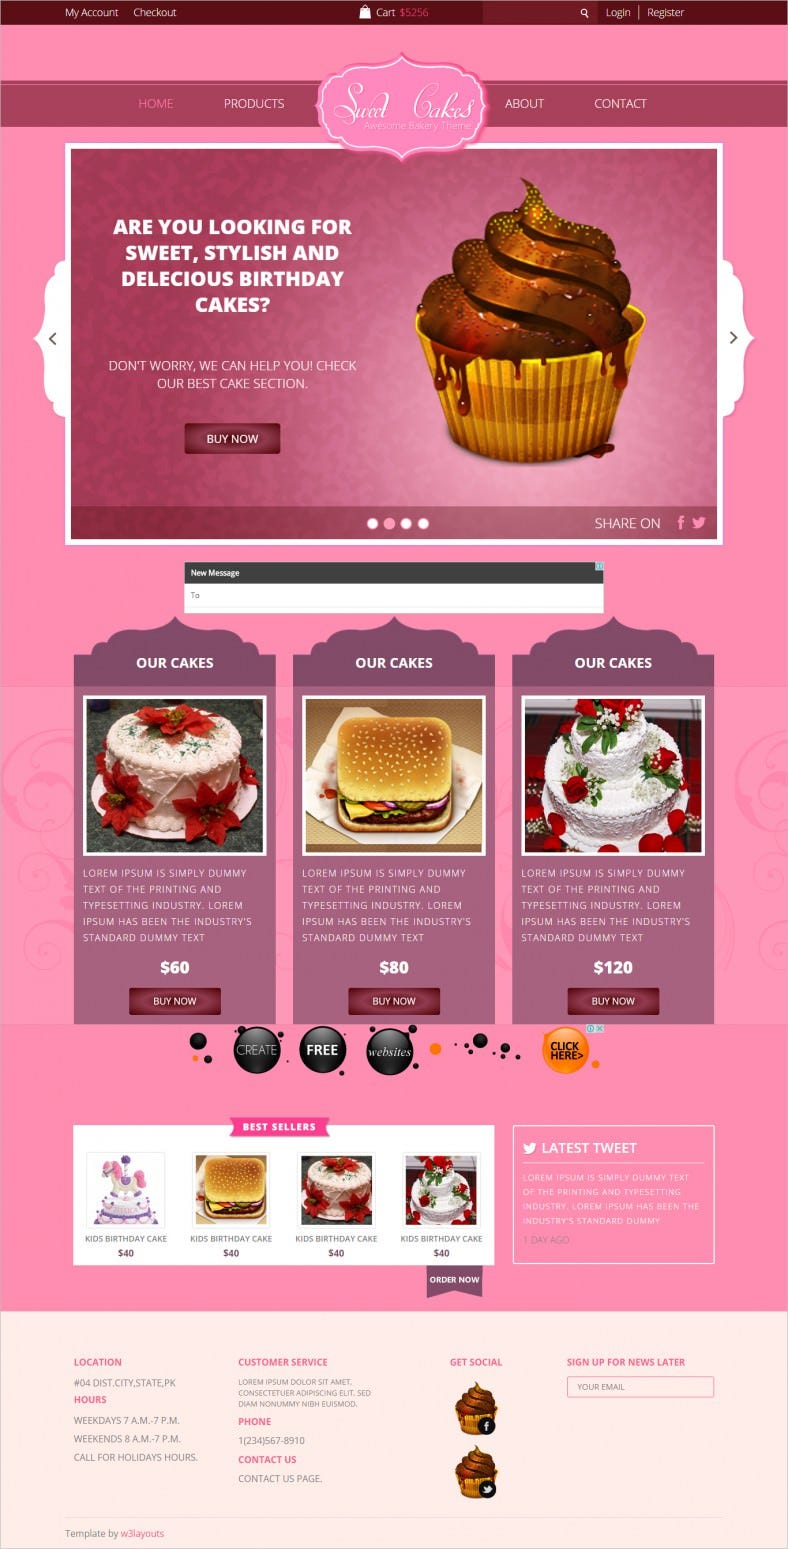 9+ Best Sweet Shop Website Templates & Themes Free ...